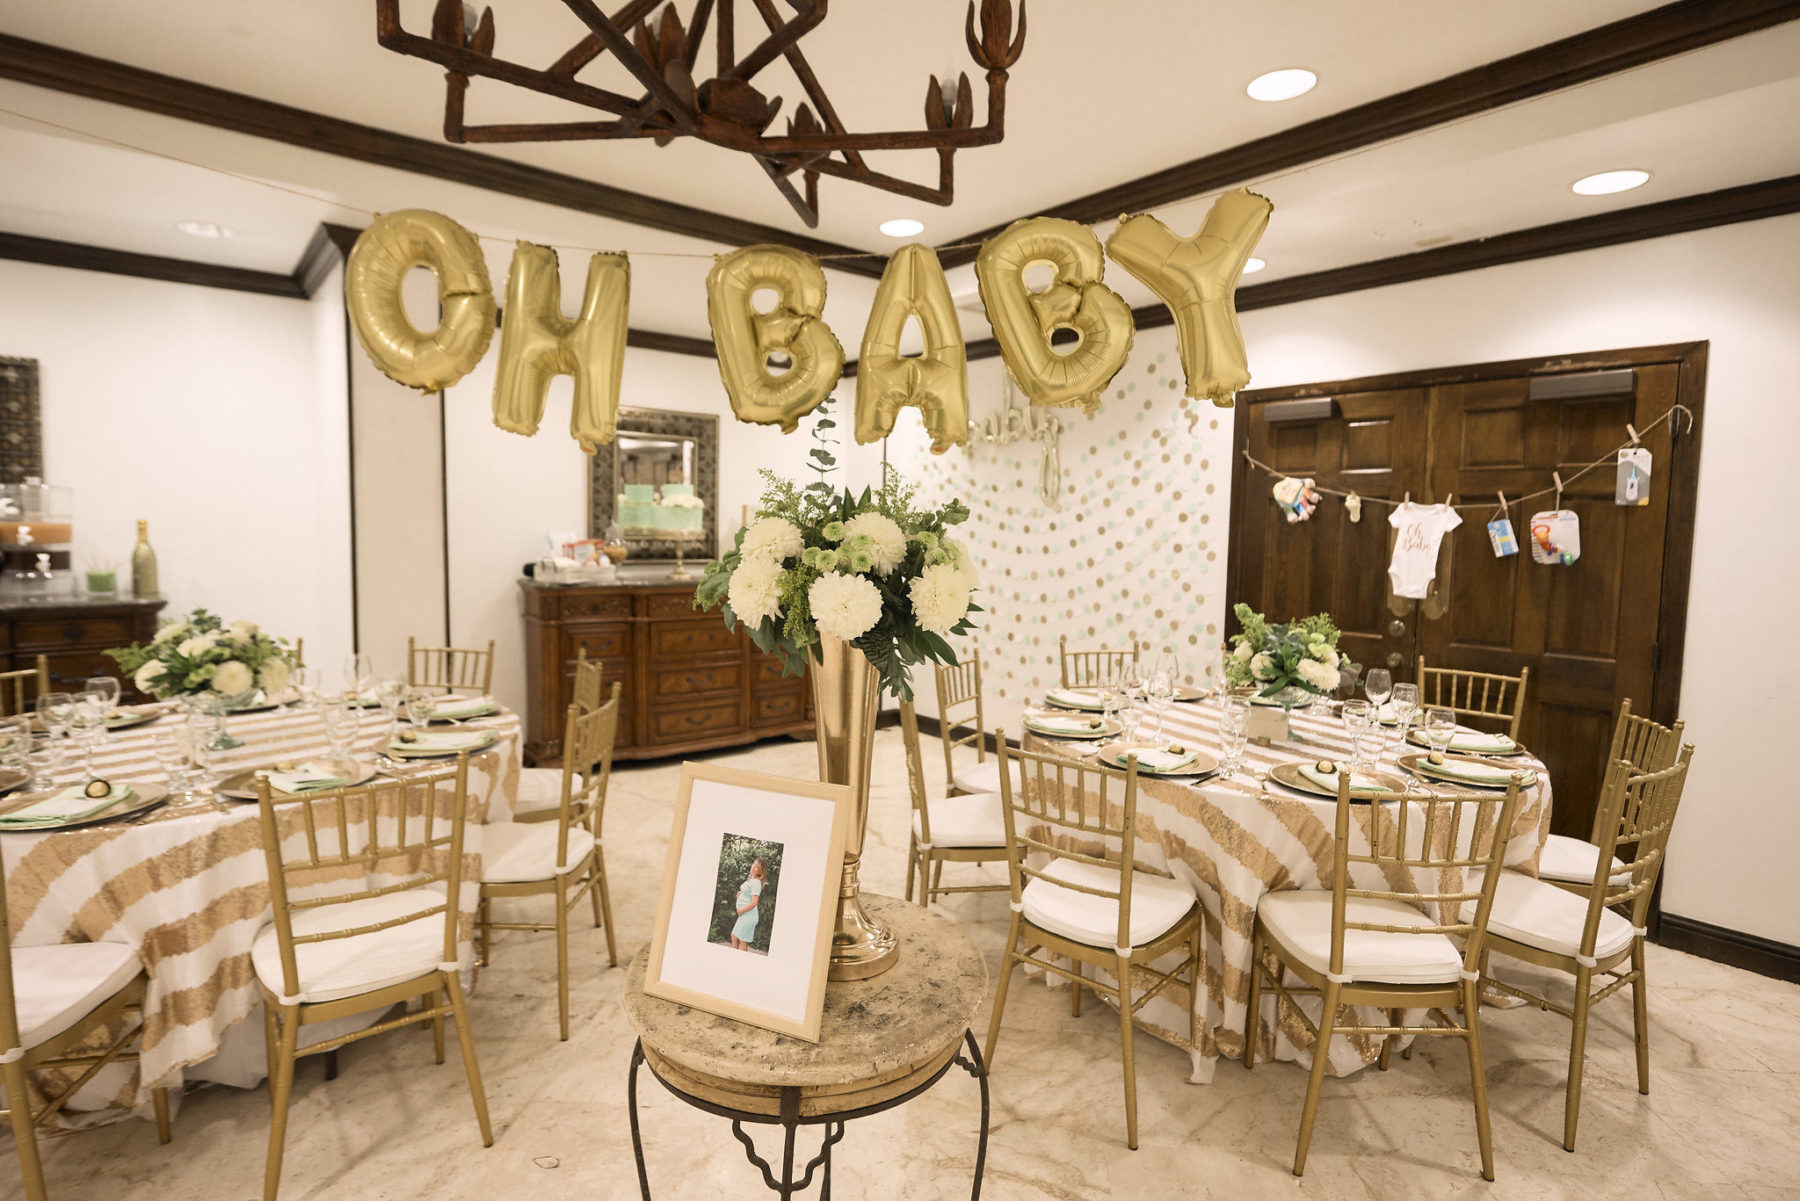 White and Gold Baby shower, Radisson Fort George Hotel and Marina, Belize City